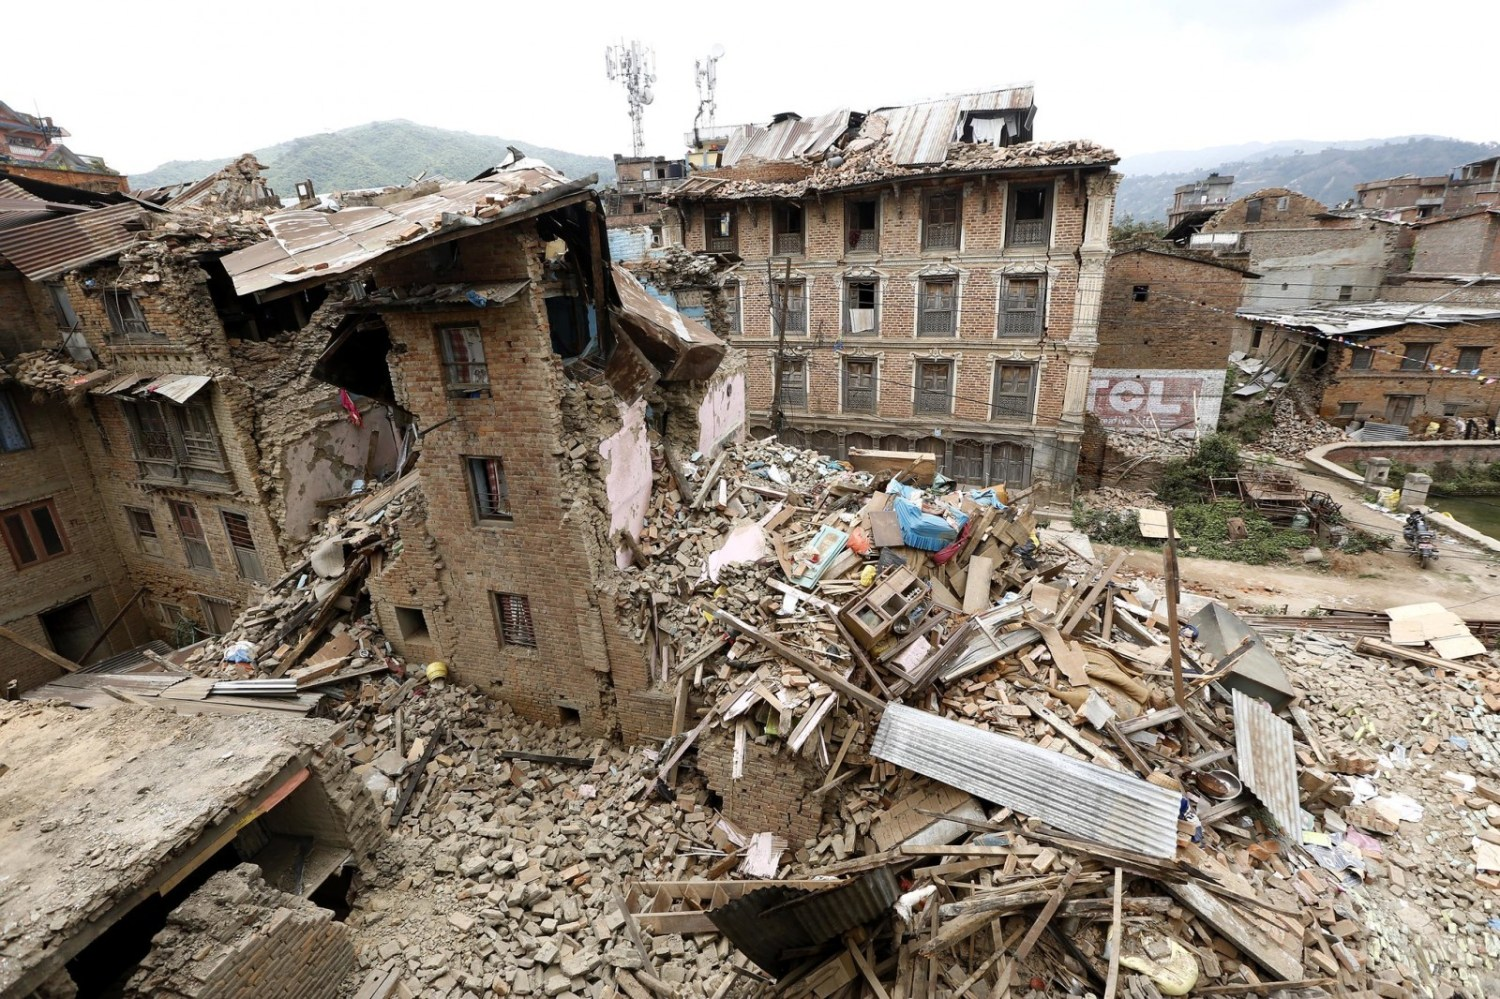 Nepal april 25 earthquake building collapse Kathmandu disaster